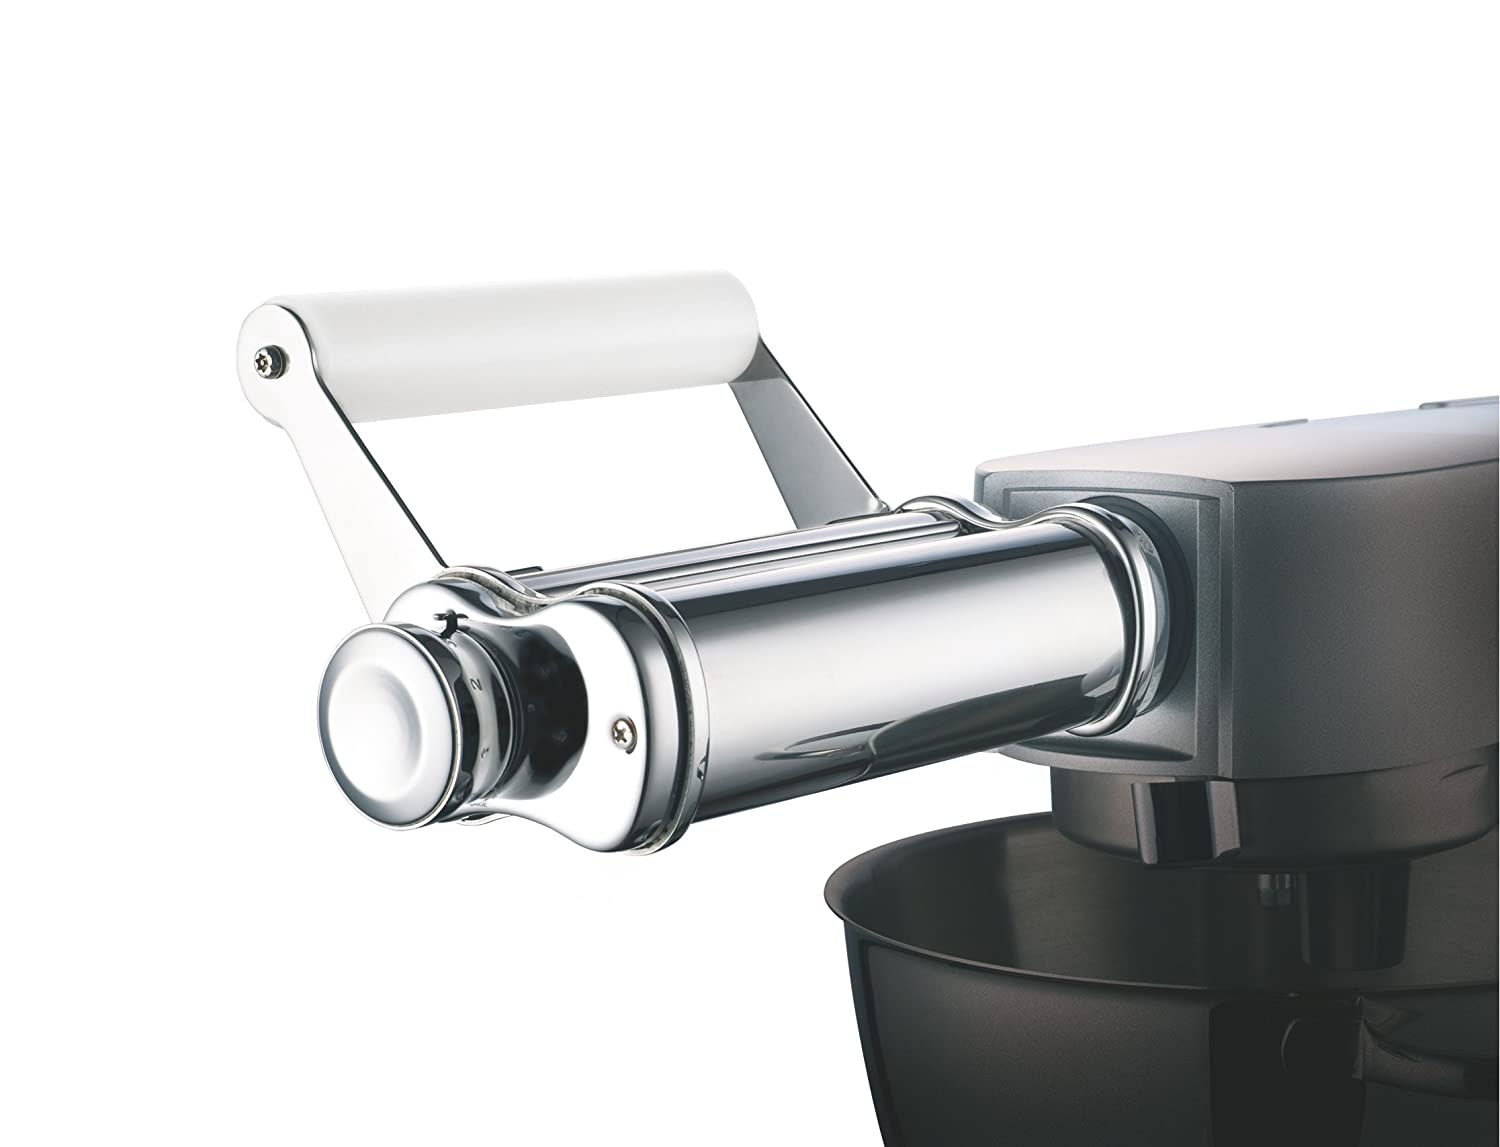 Amazon.com: Kenwood AT970A Metal Pasta Roller, Silver: Pasta ...